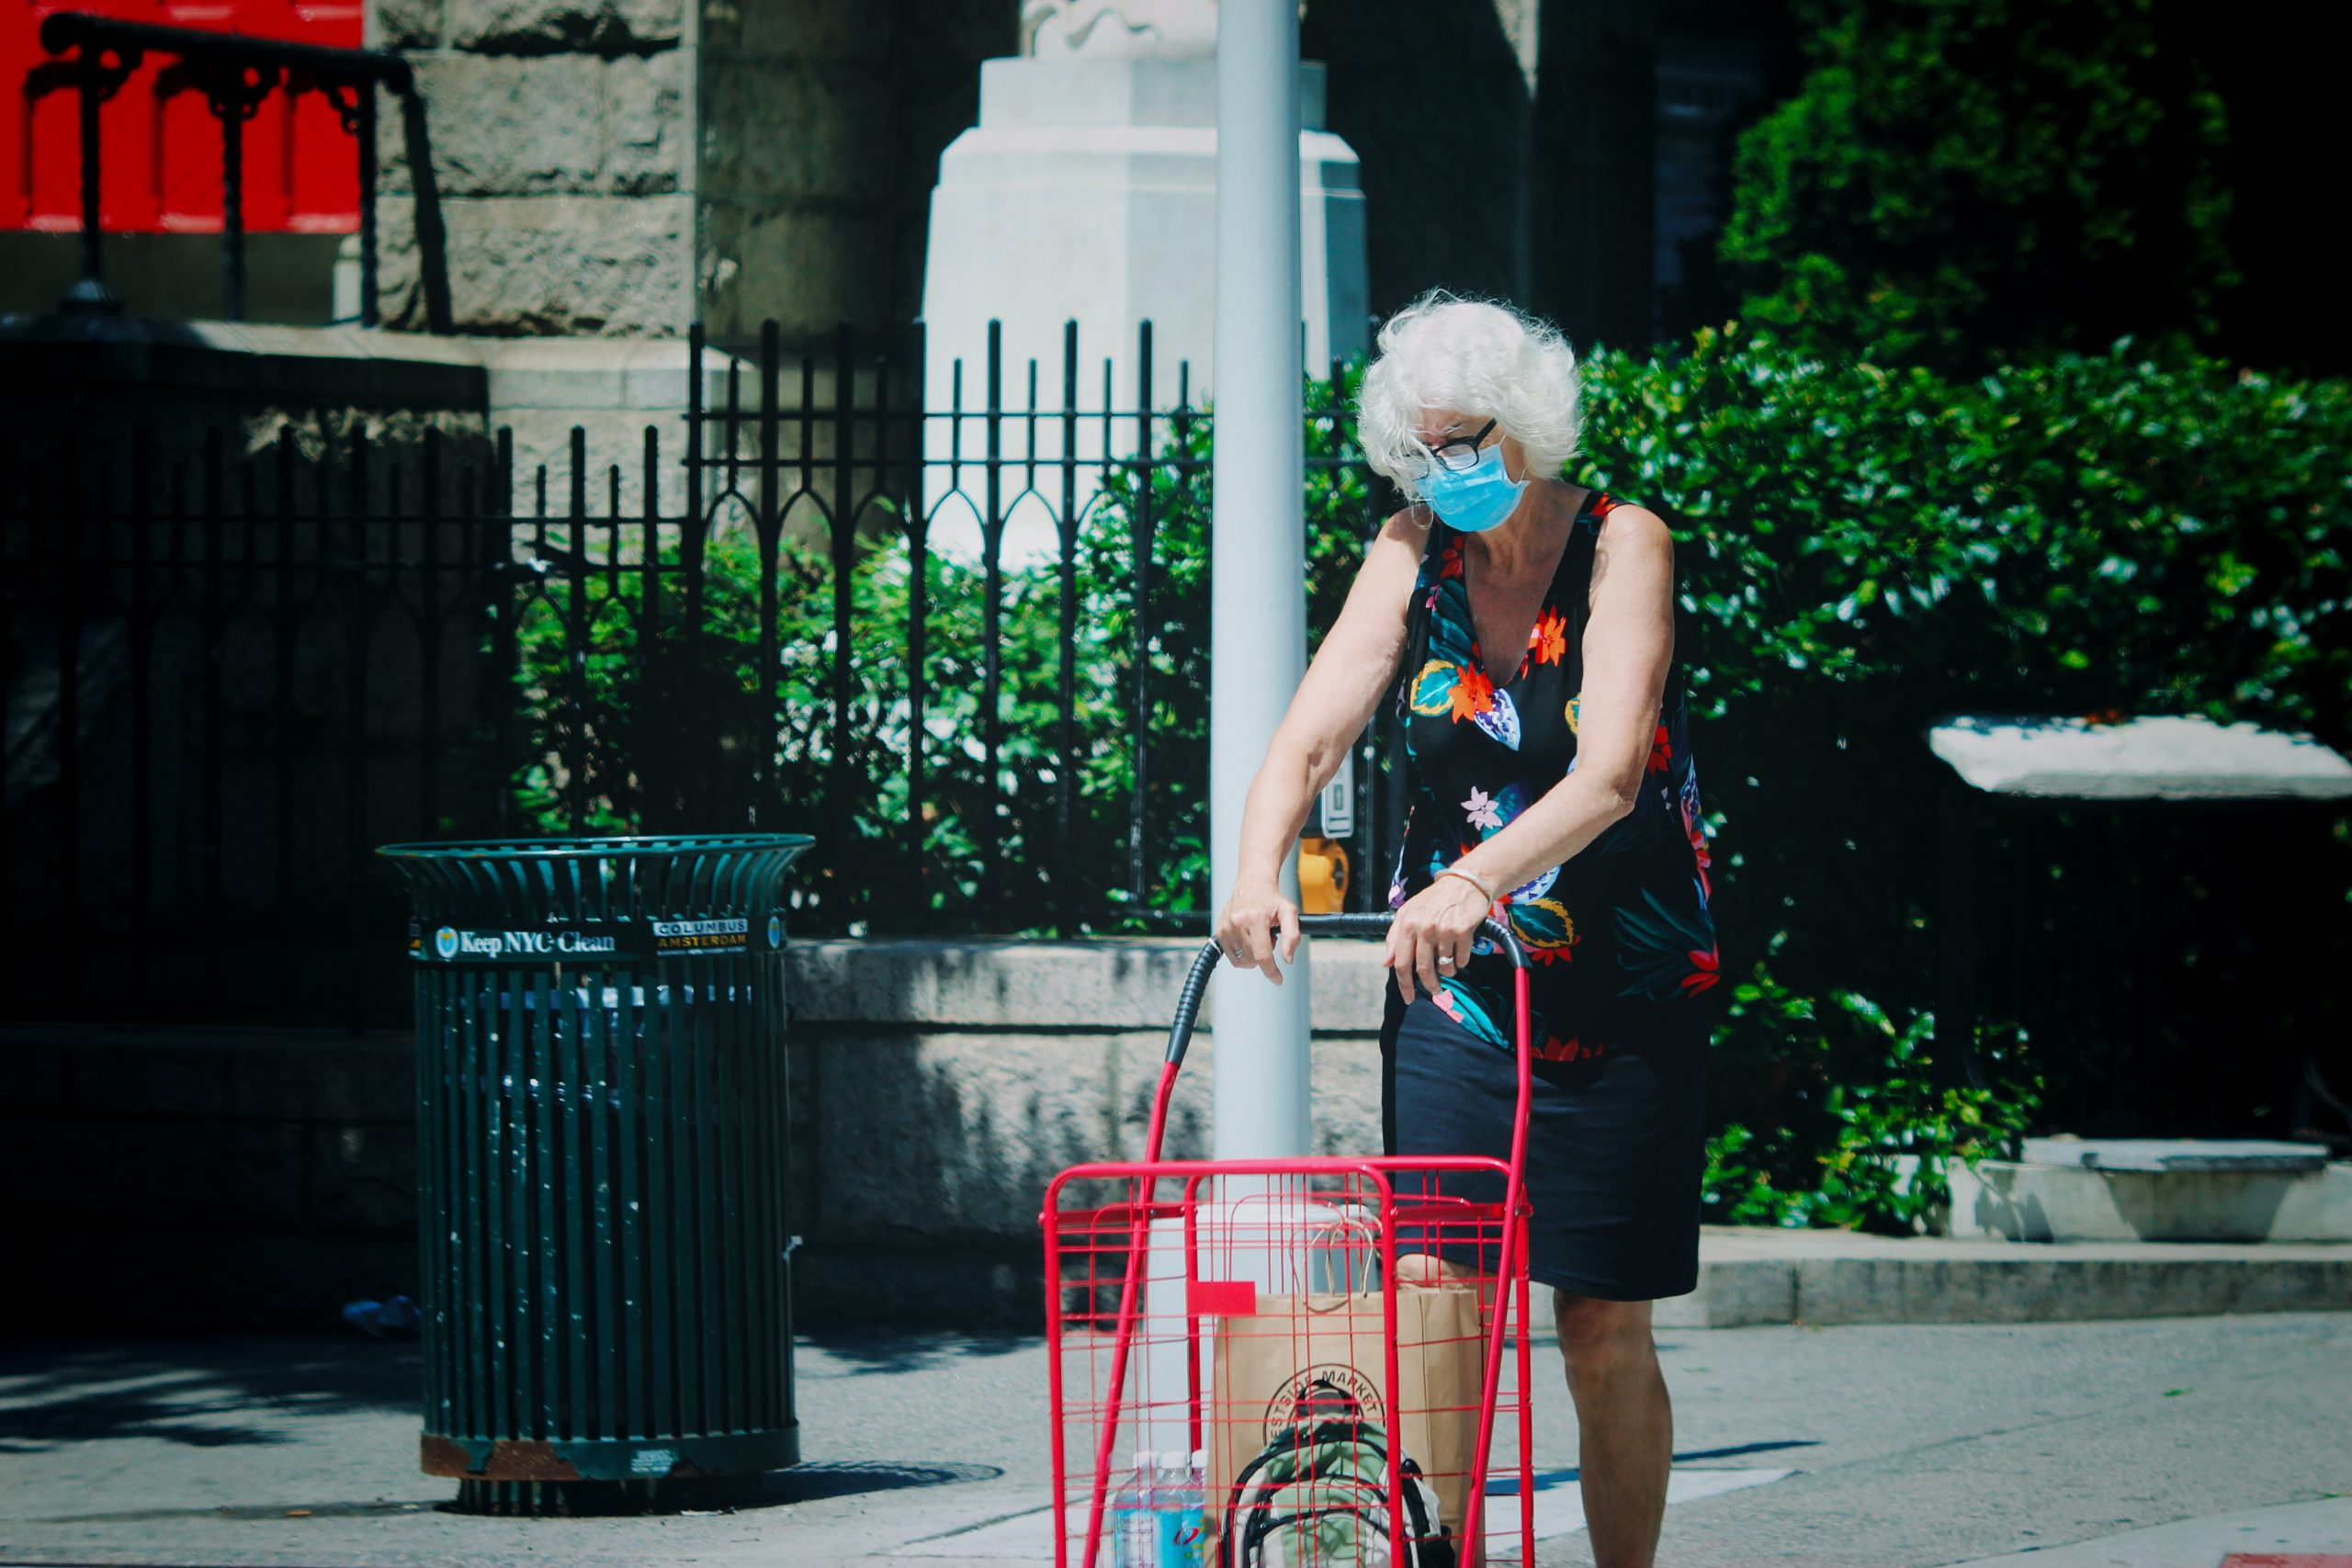 An elderly, white-haired woman walks down the street with her shopping trolley on wheels. She is wearing a disposable light blue mask.